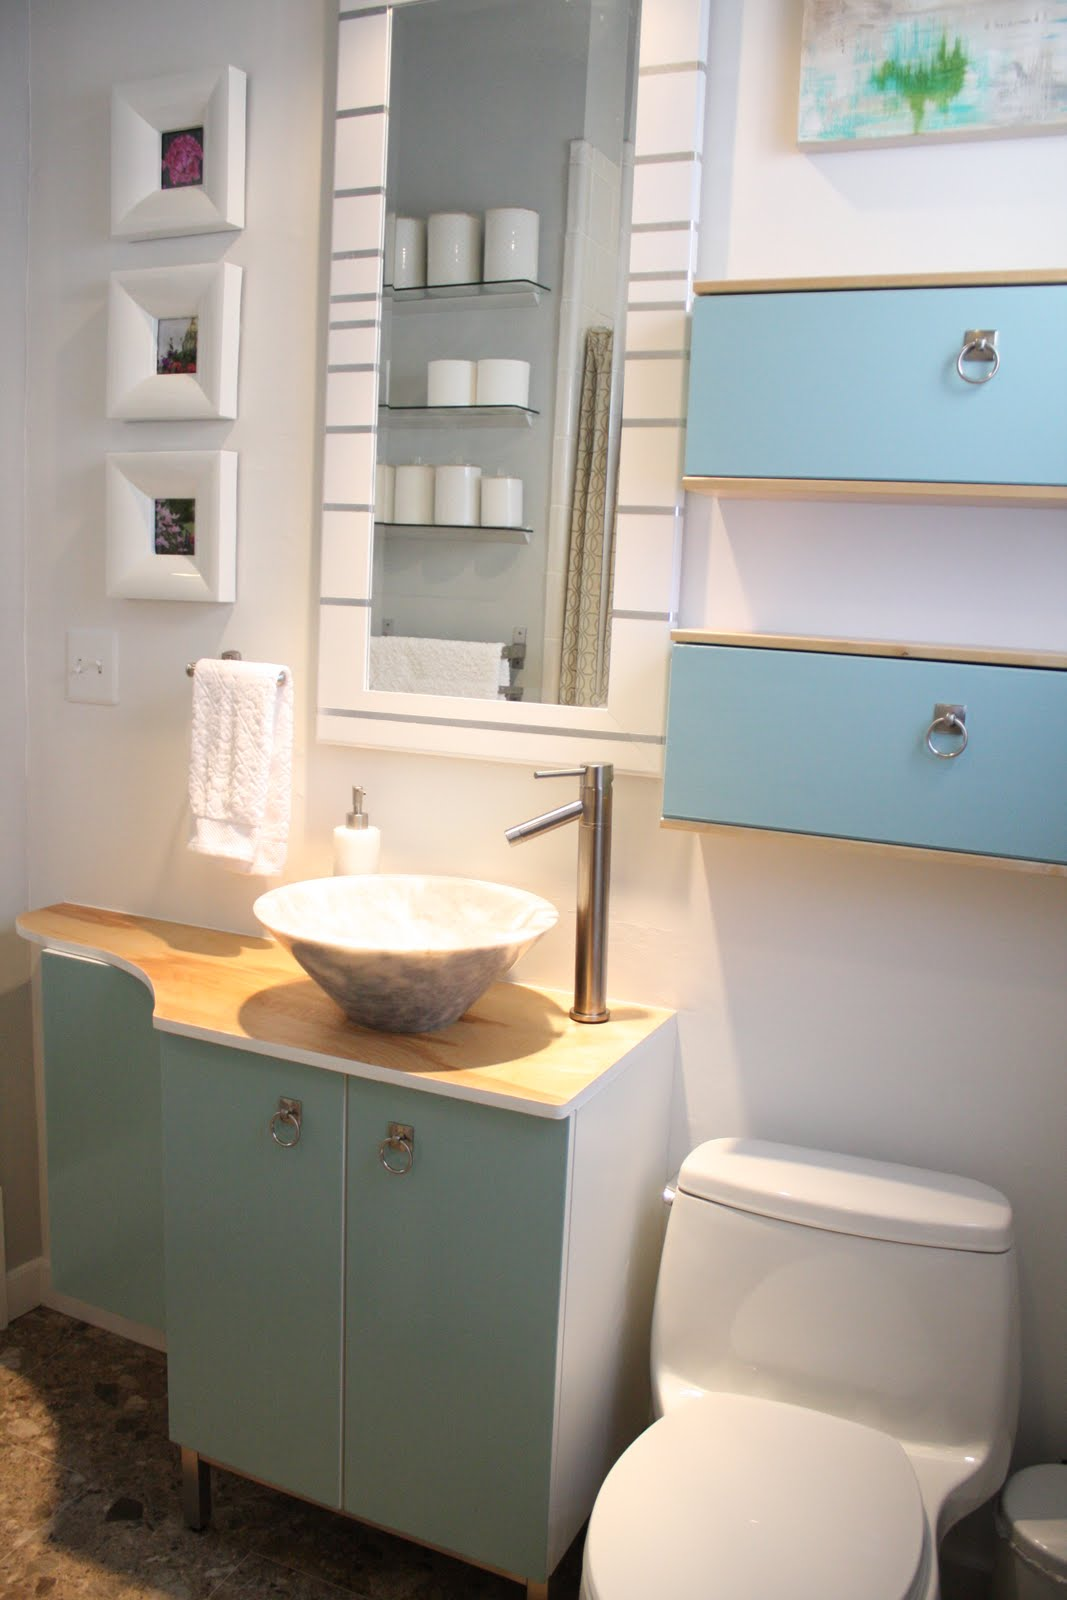 Original 31 Amazingly DIY Small Bathroom Storage Hacks Help You Store More